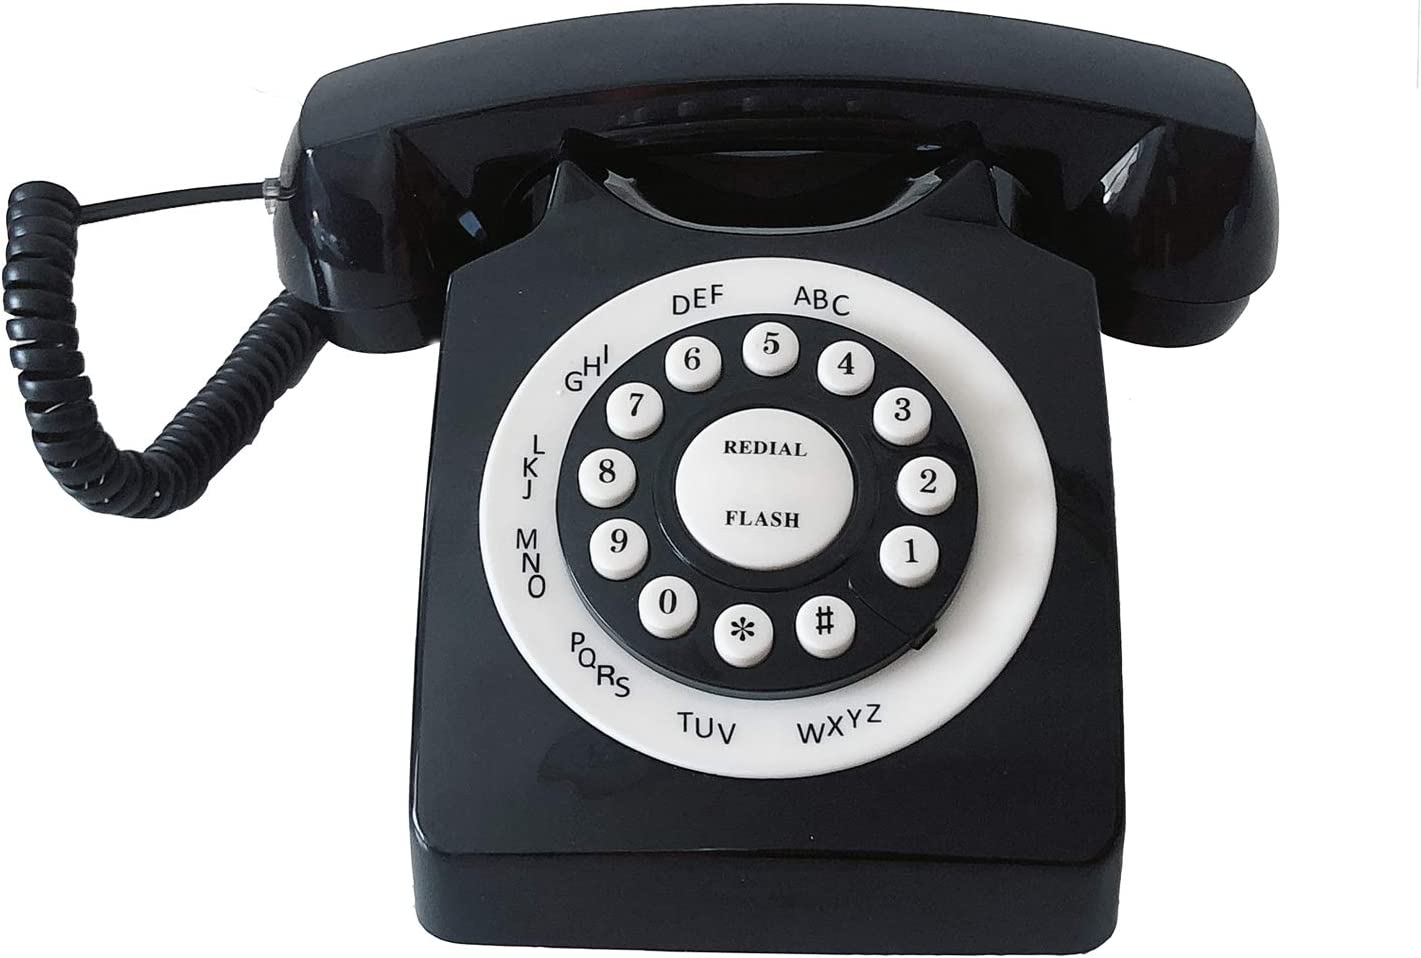 Retro Corded Landline Phone, TelPal Classic Vintage Old Fashion Telephone for Home & Office, Wired Home Phone Gift for Seniors (Black)